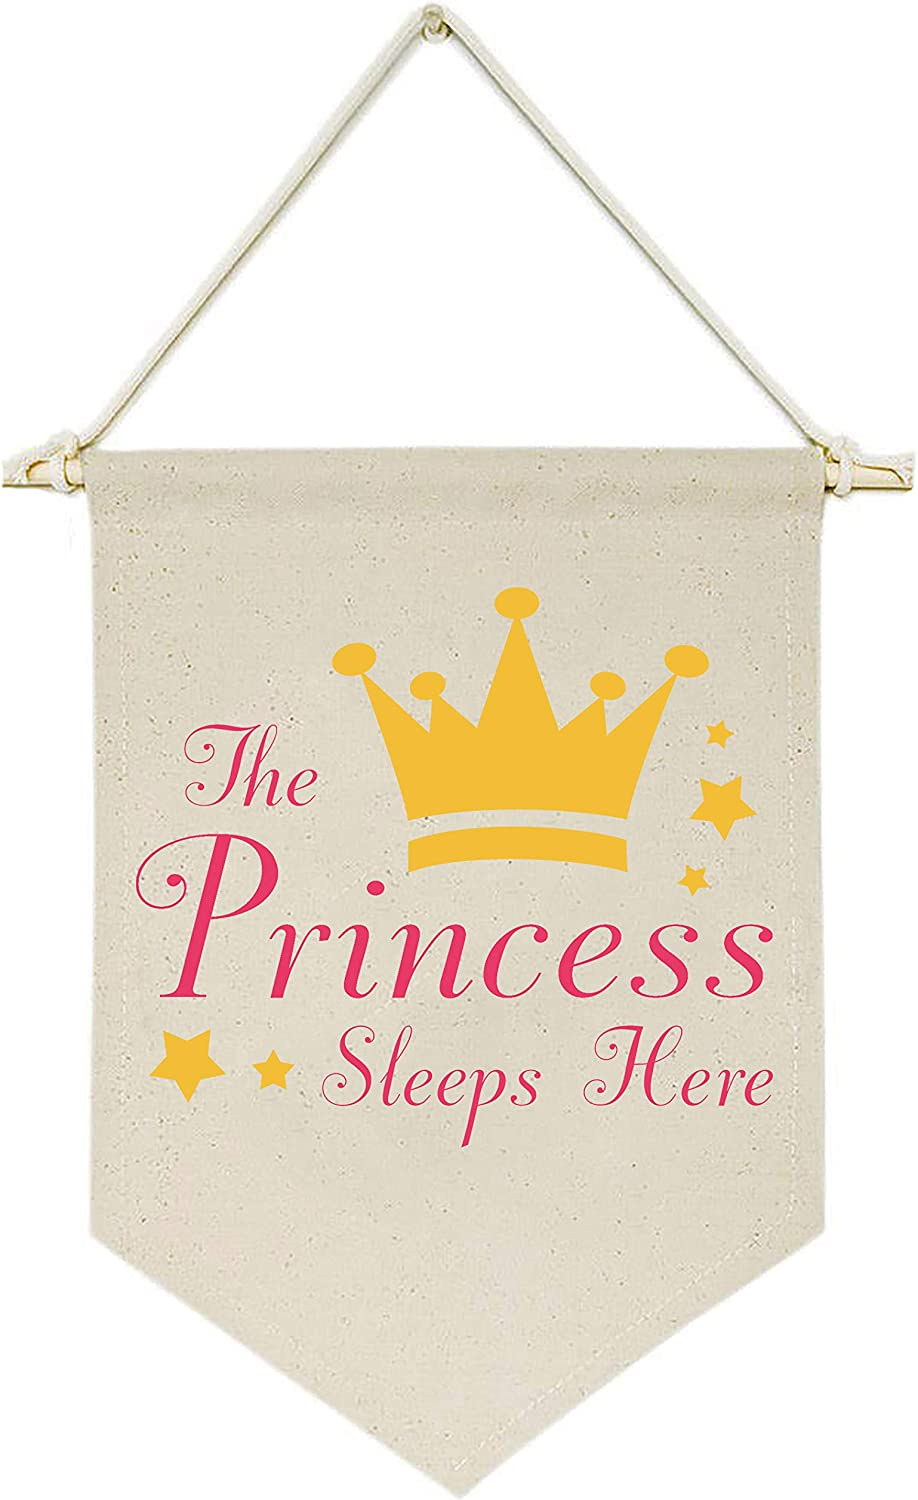 Topthink The Princess Sleeps Here - Canvas Hanging Flag Banner Wall Sign Decor Gift for Baby Kids Girl Nursery Teen Room Front Door - Crown,Stars